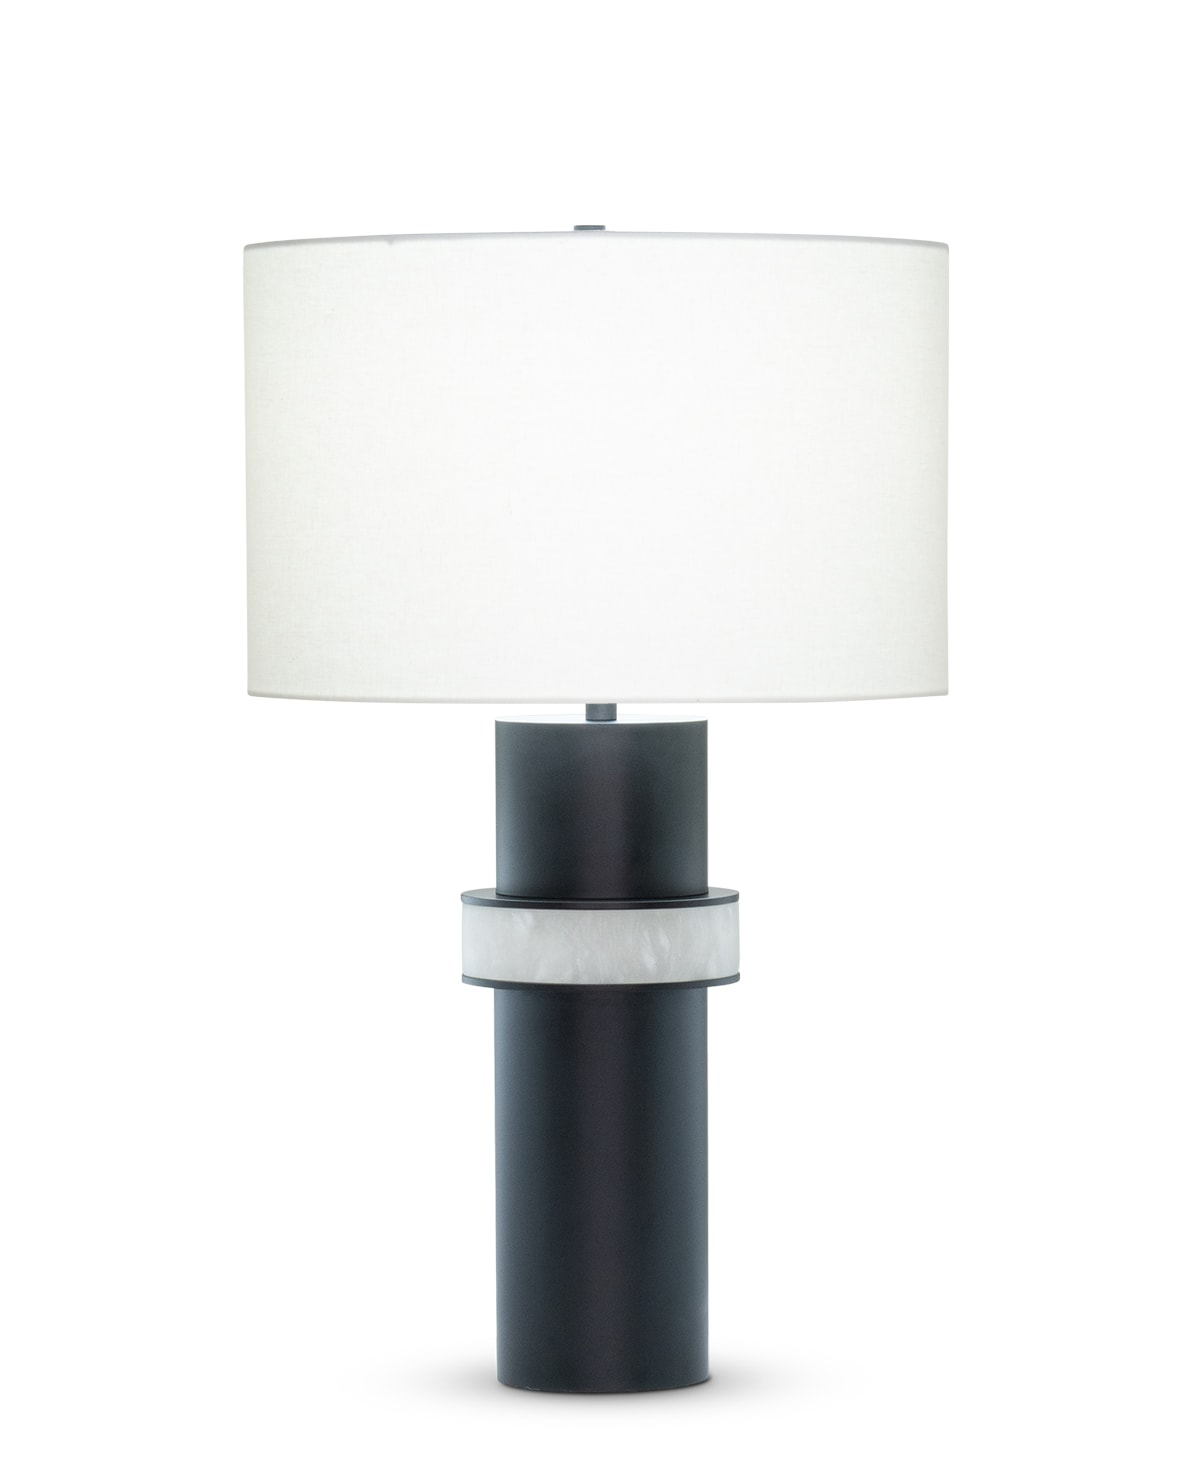 FlowDecor Ricardo Table Lamp in metal base with black matte finish and alabaster and off-white linen drum shade (# 4529)